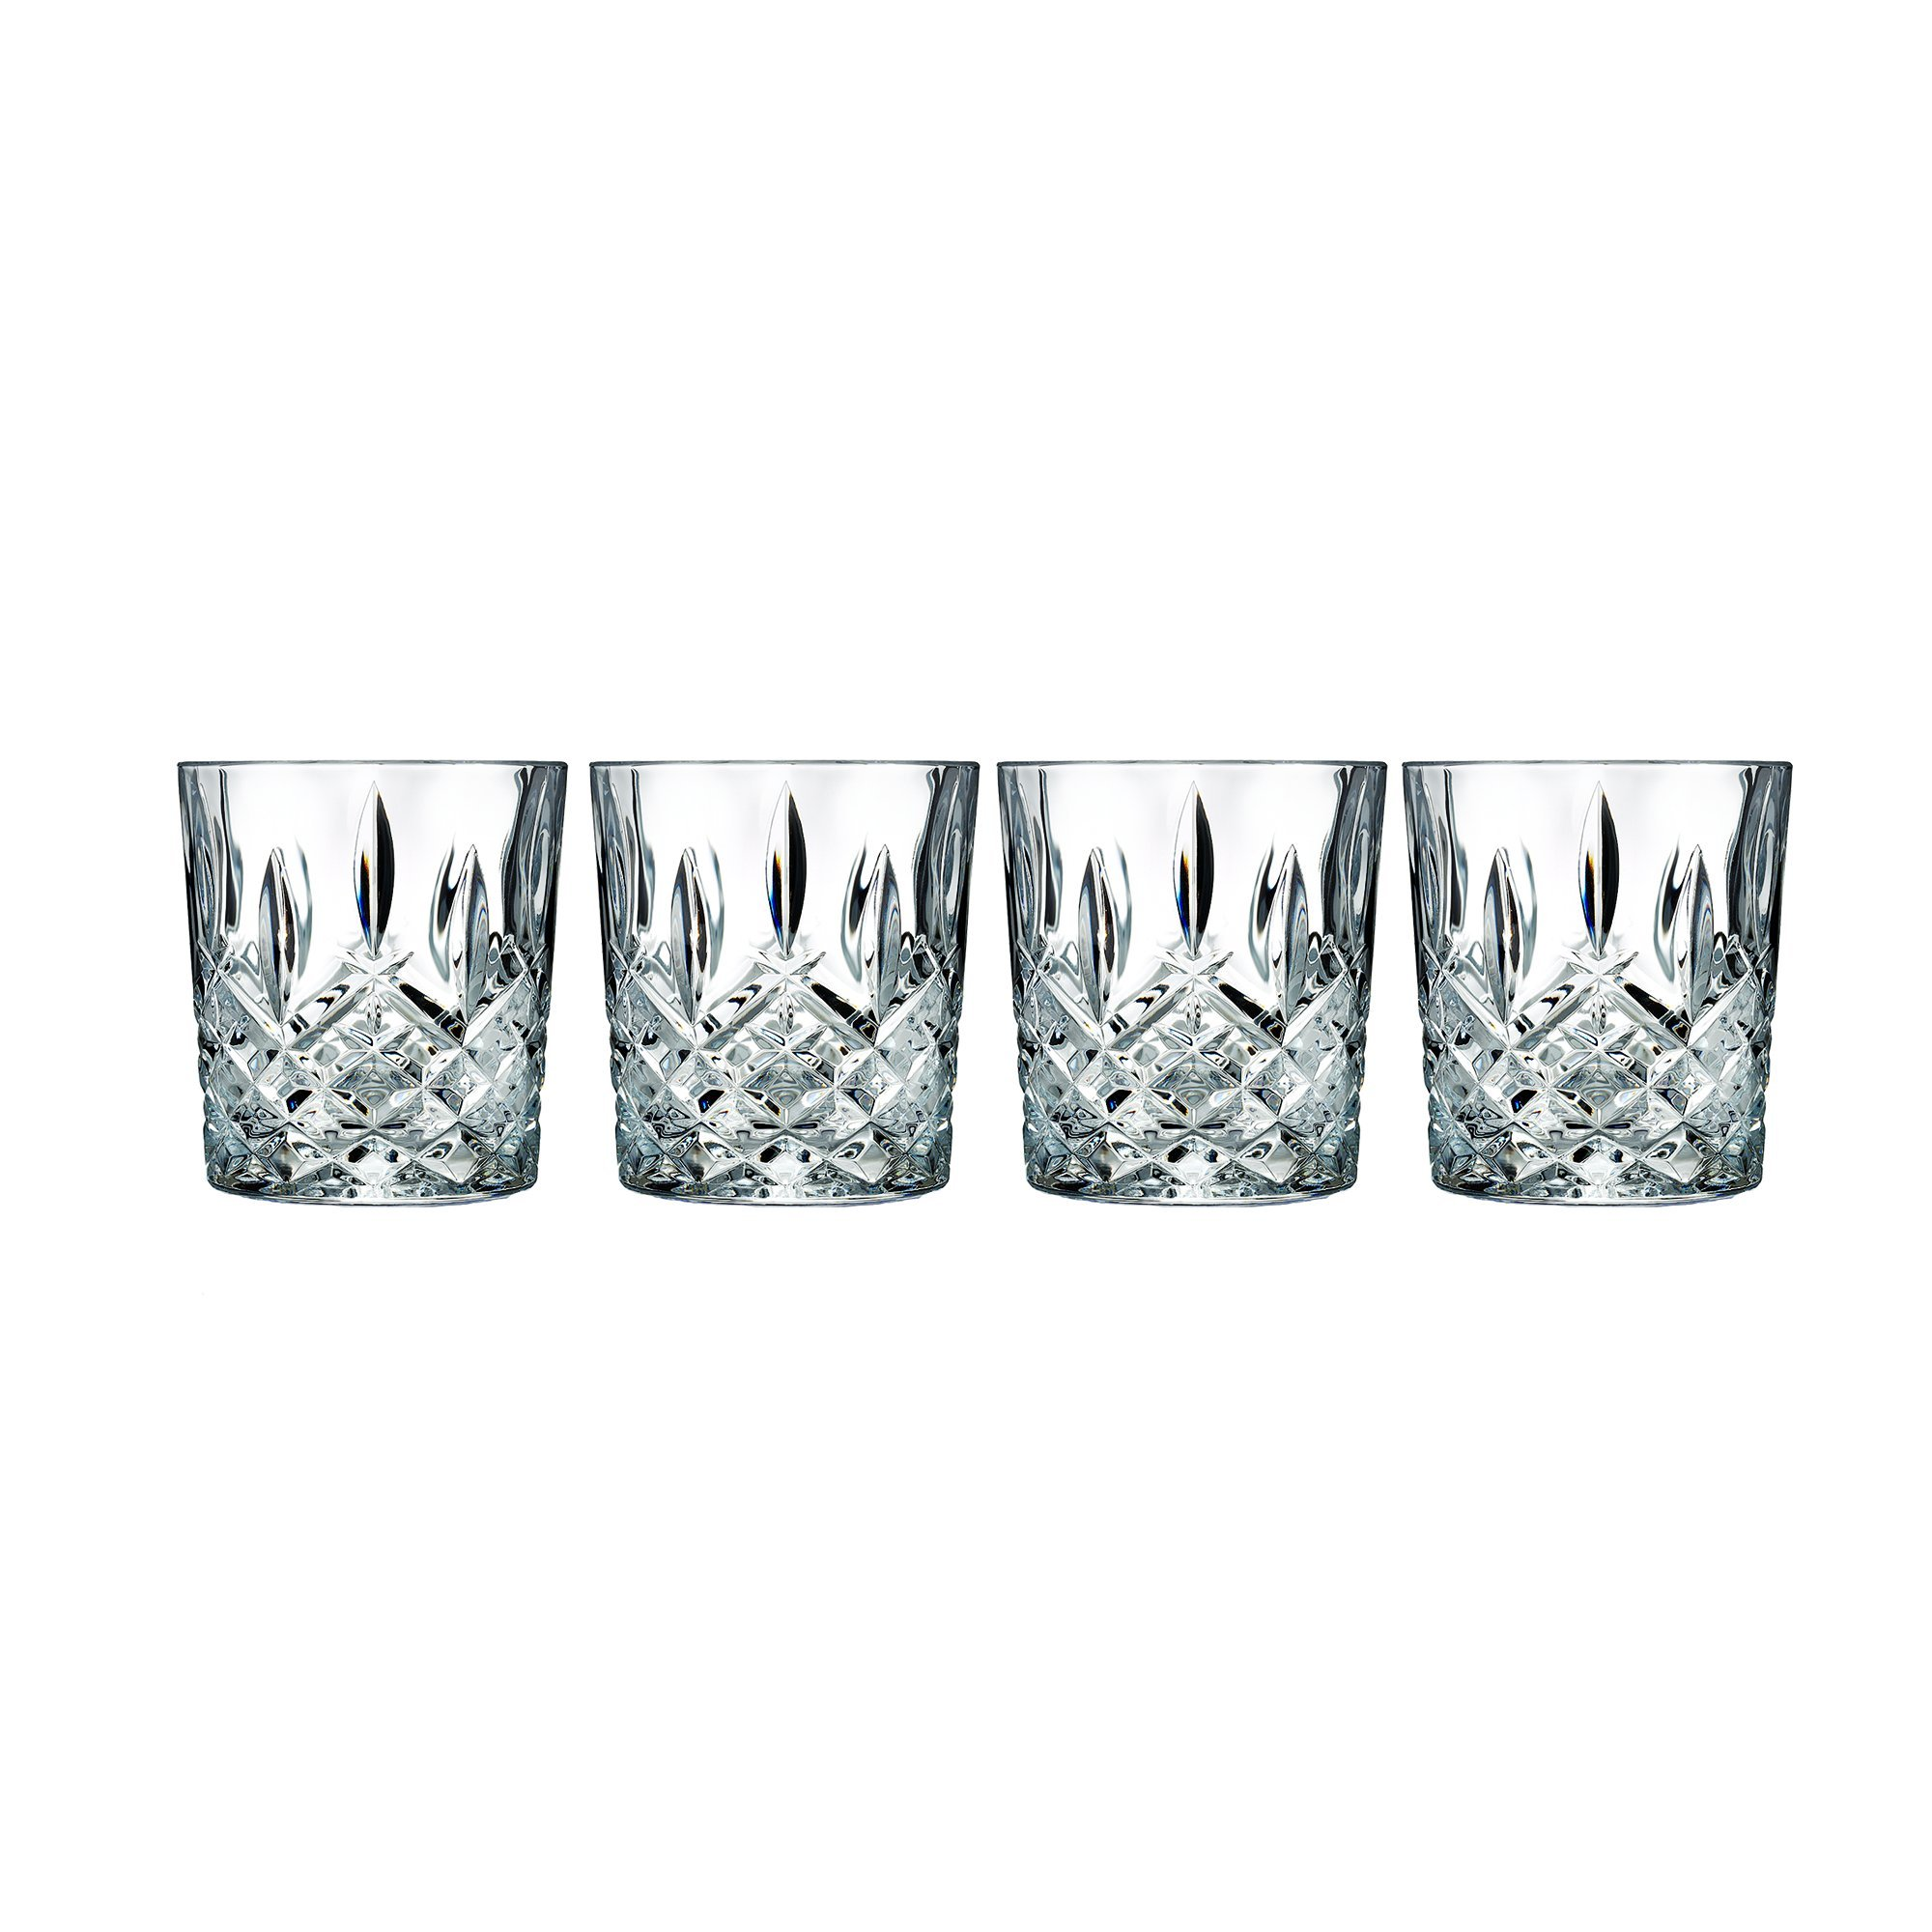 Marquis by Waterford 165118 Markham Double Old Fashioned Glasses, Set of 4 by Marquis By Waterford